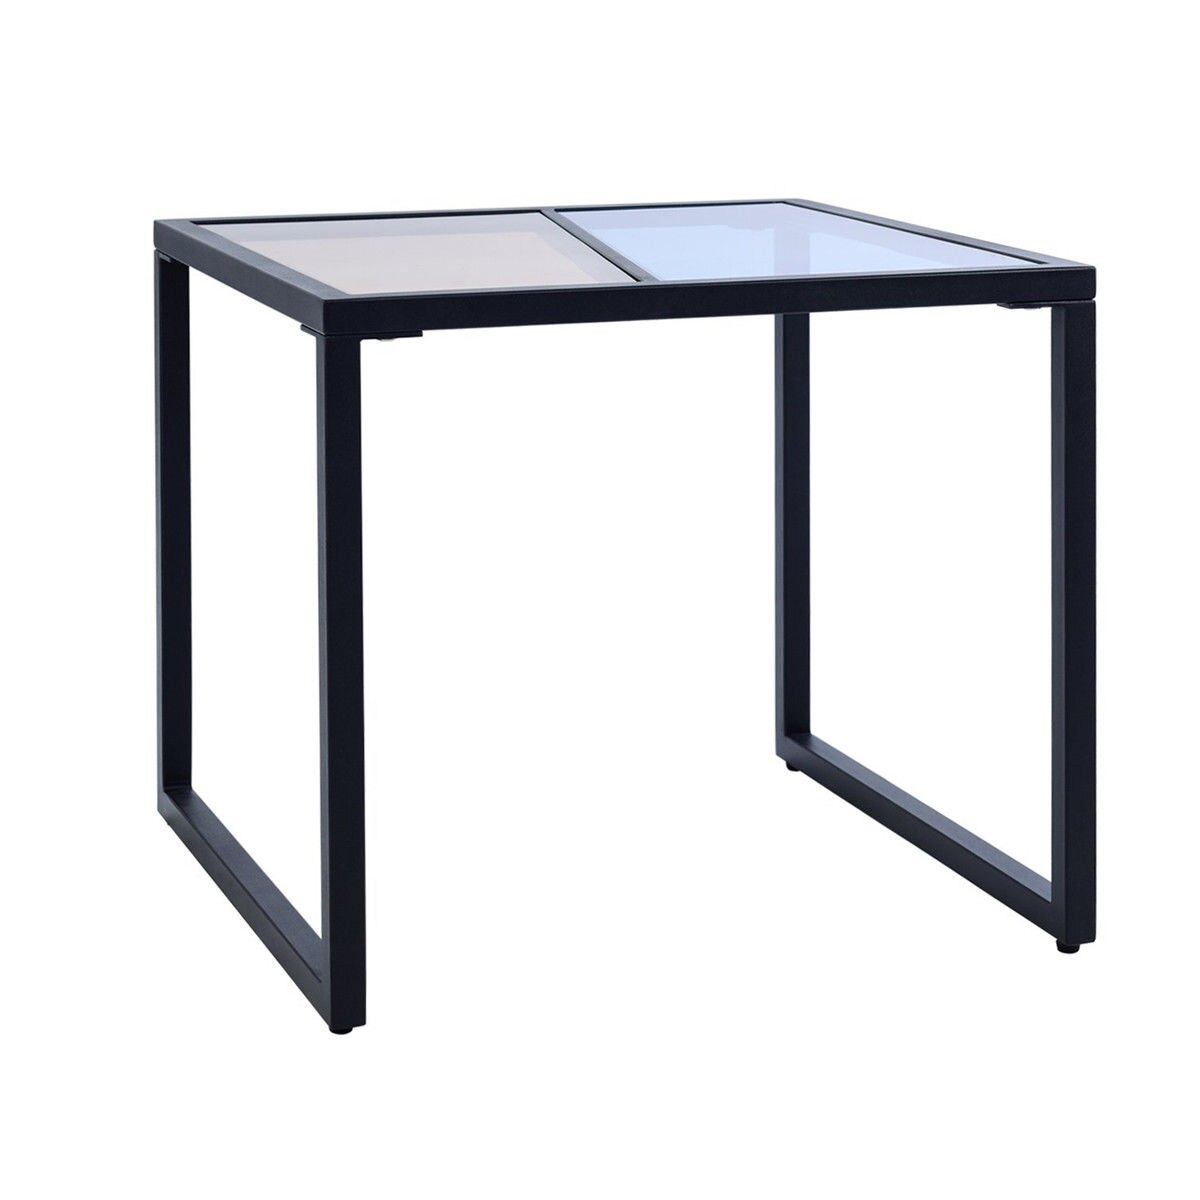 way square side end table tempered glass top metal tables living room frame furniture pottery barn cart coffee white with storage gustav stickley painted dresser wood outdoor